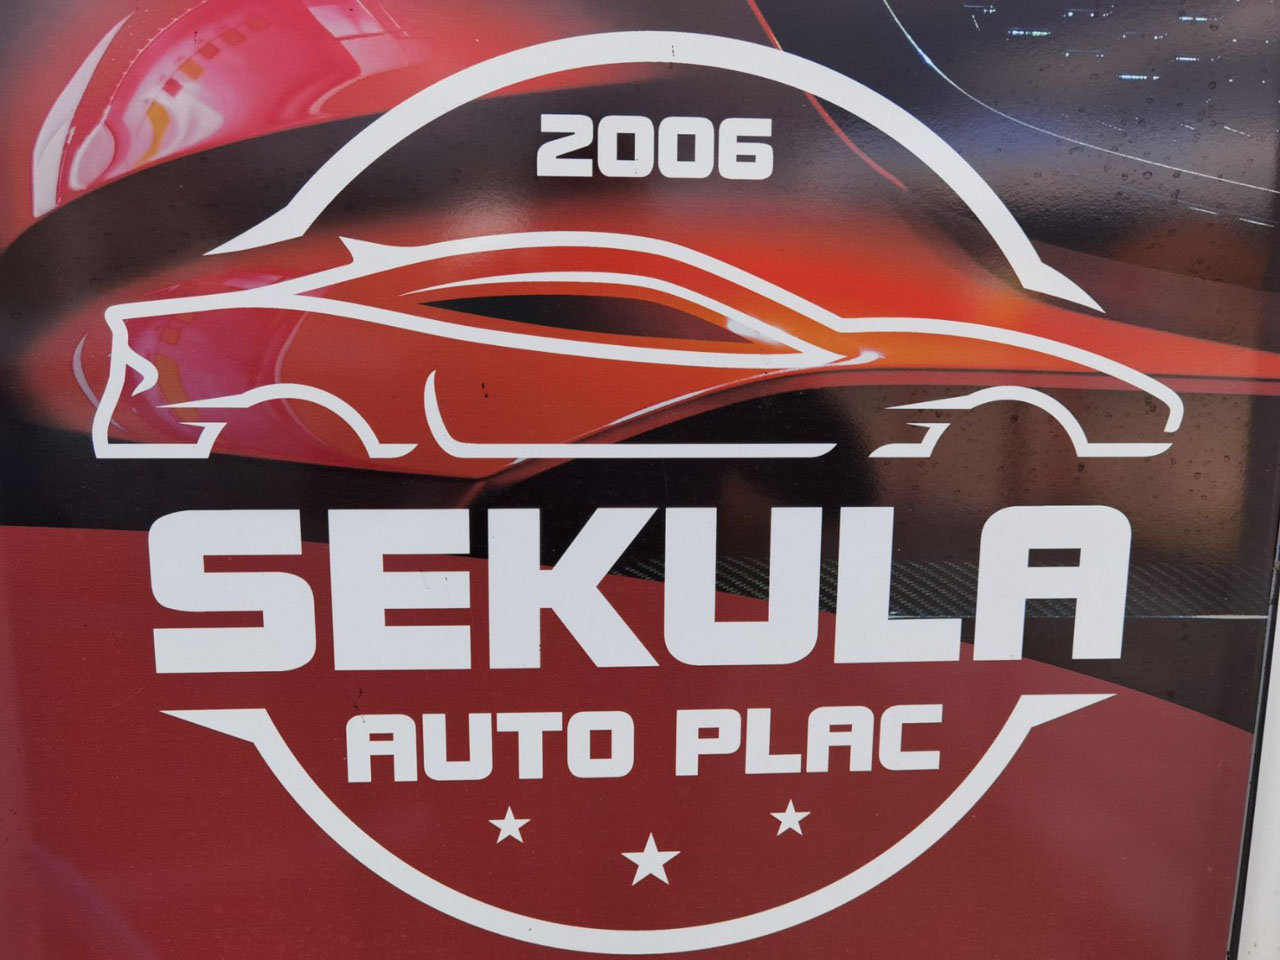 CAR AND TOWING SERVICE SEKULA 2006 Towing services Kraljevo - Photo 8